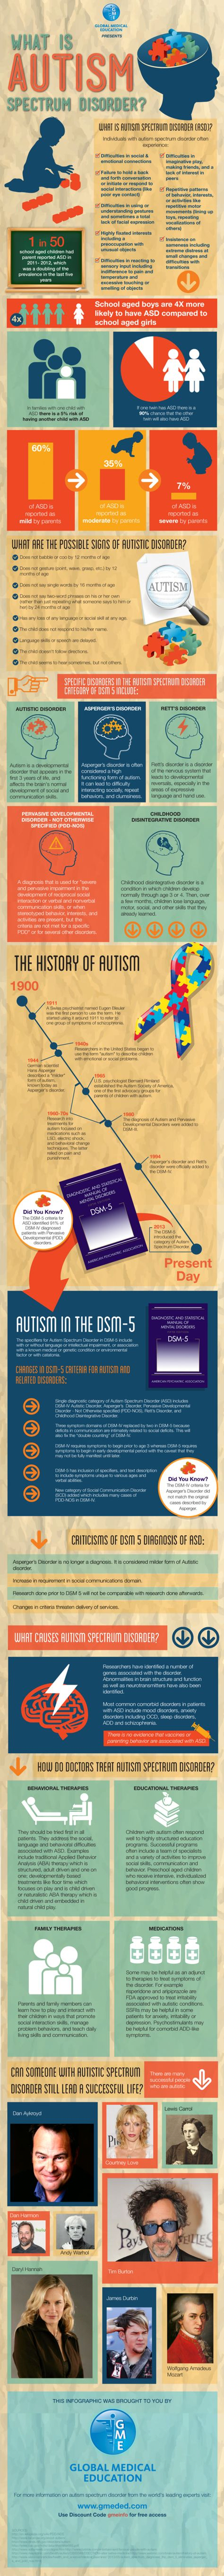 "Autism and the newly coined ""Autism Spectrum Disorder"" explained via the DSM. #infographic."